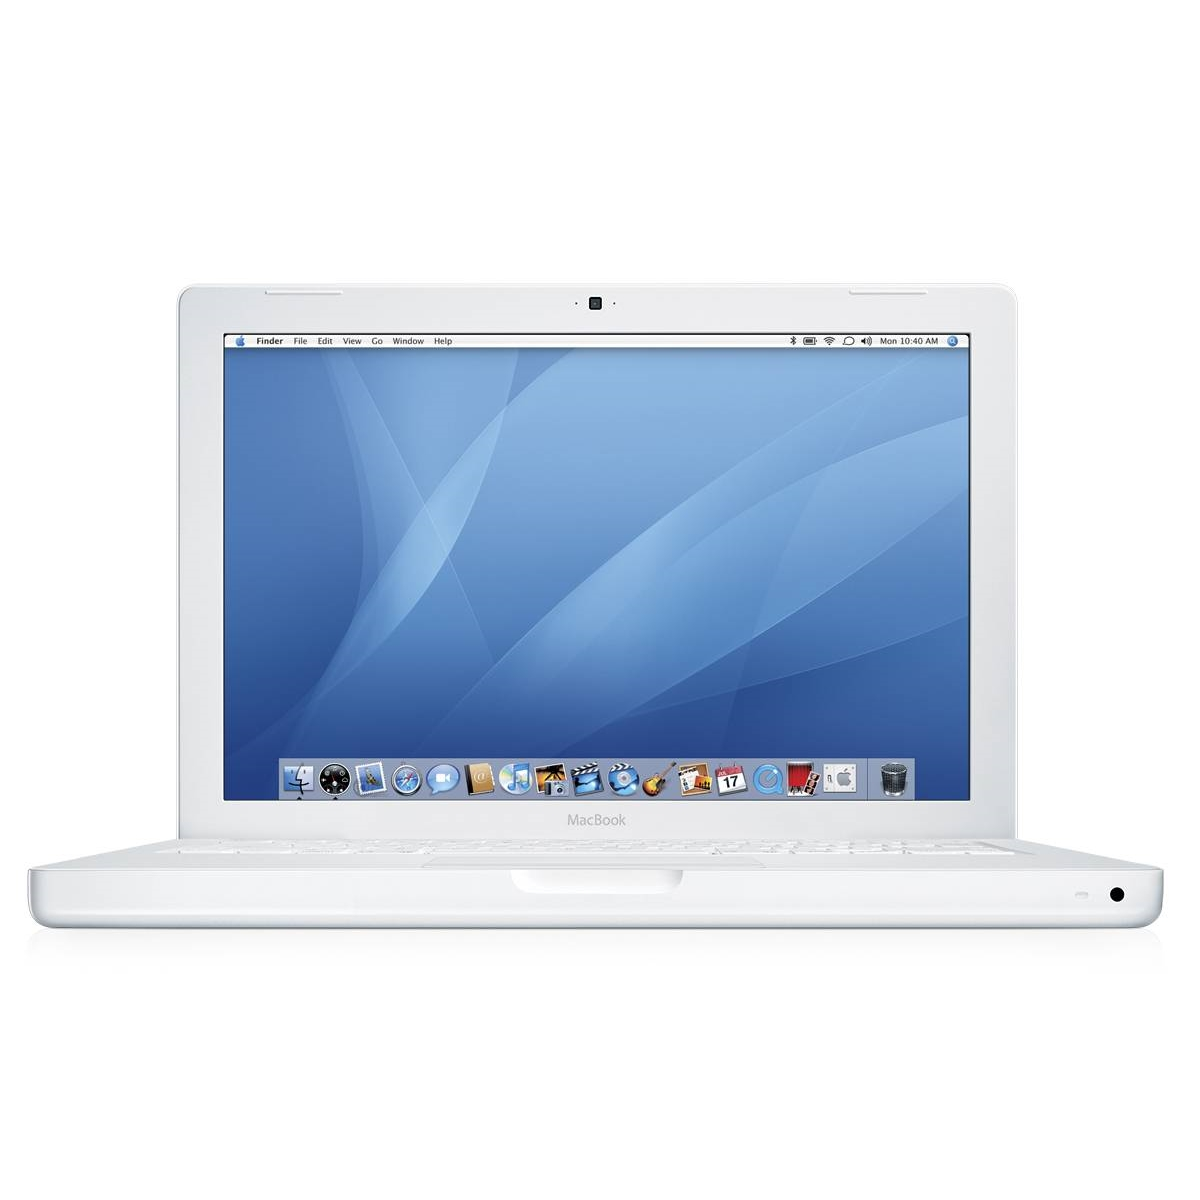 "Apple MacBook 13.3"" 2.16GHz Intel Core 1GB Memory 120GB H..."